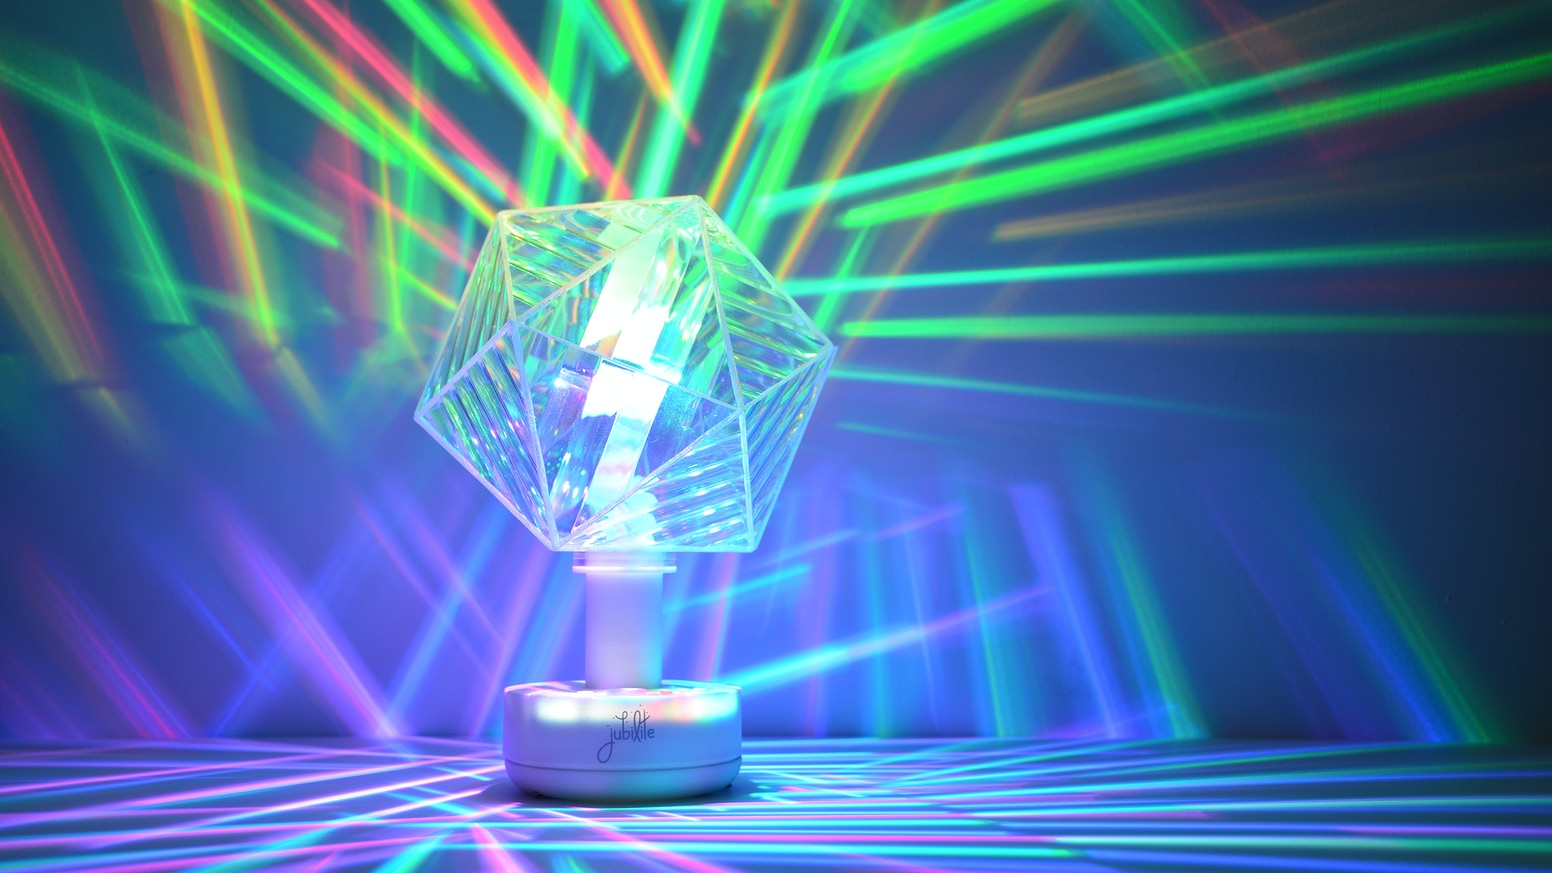 Jubilite A Dance Party Lamp Kit By Tony Hu Kickstarter Squishy Circuits Kits Used Slo Makerspace